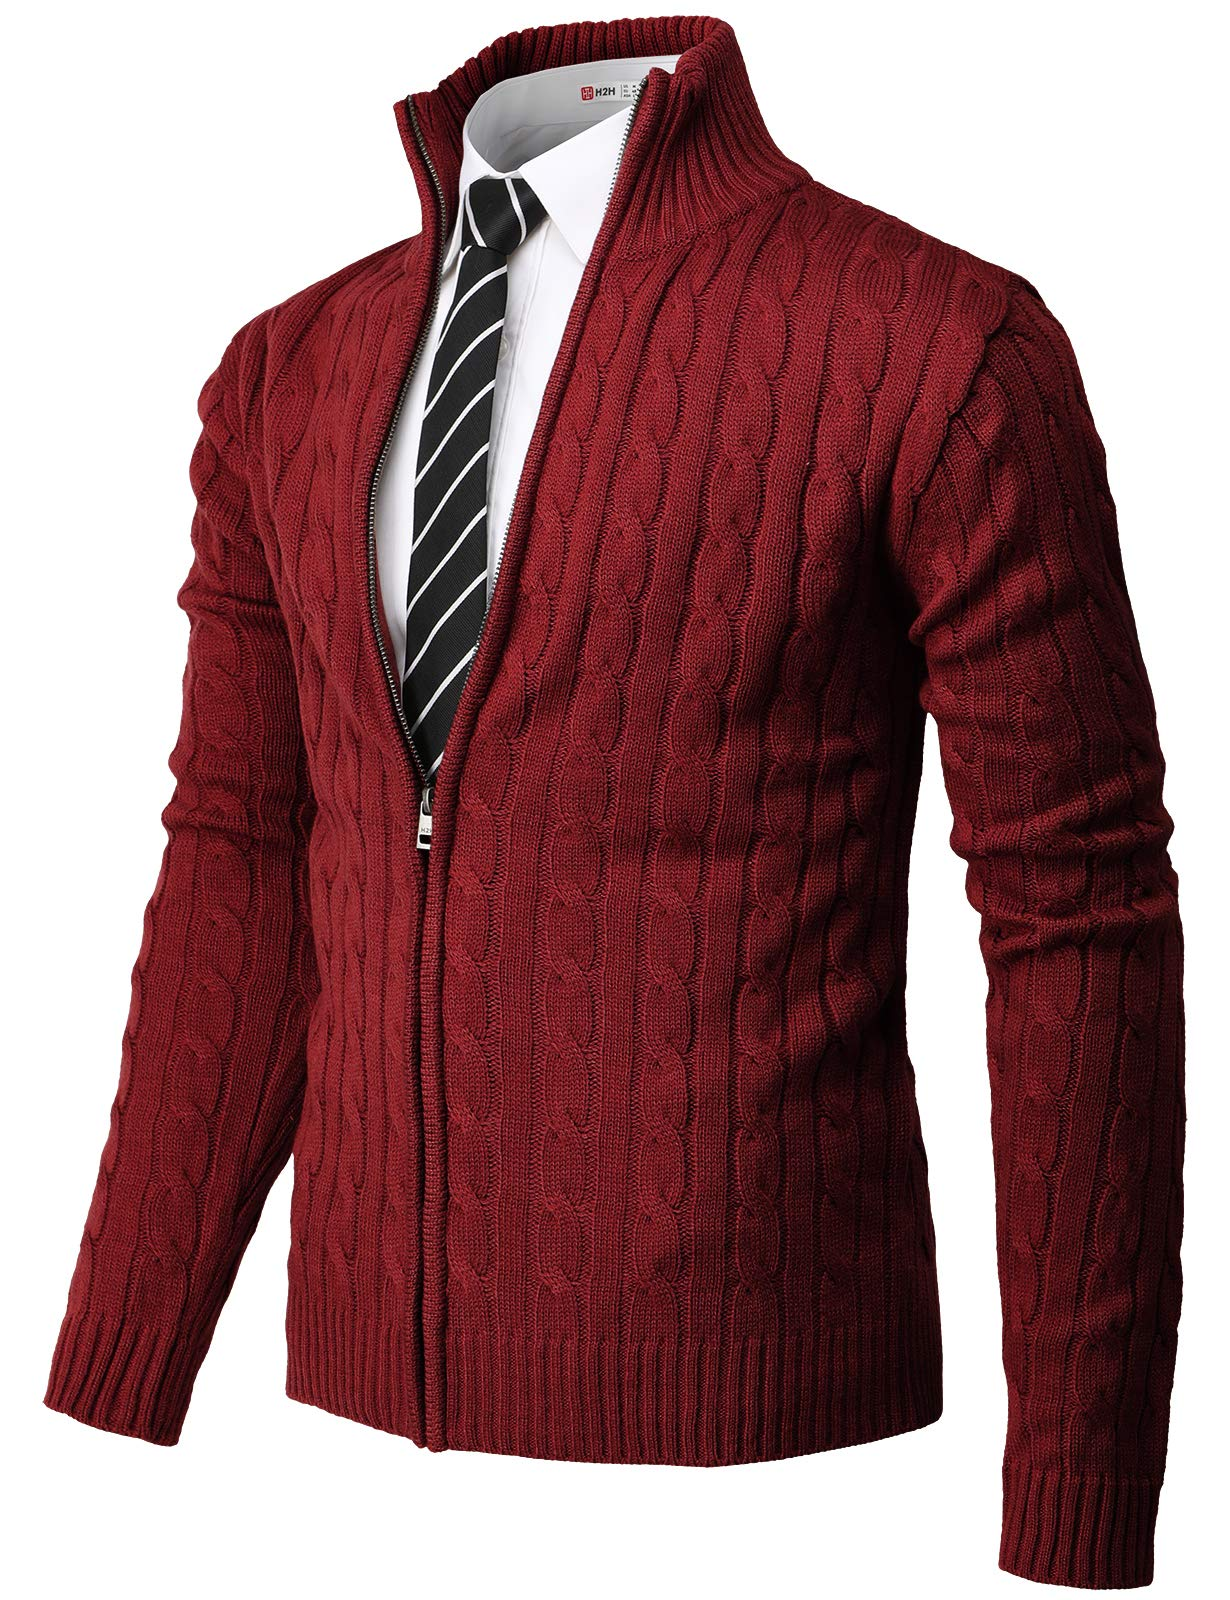 H2H Mens Casual Slim Fit Knitted Cardigan Zip-up Long Sleeve Thermal with Twisted Pattern RED US M/Asia L (CMOCAL034) by H2H